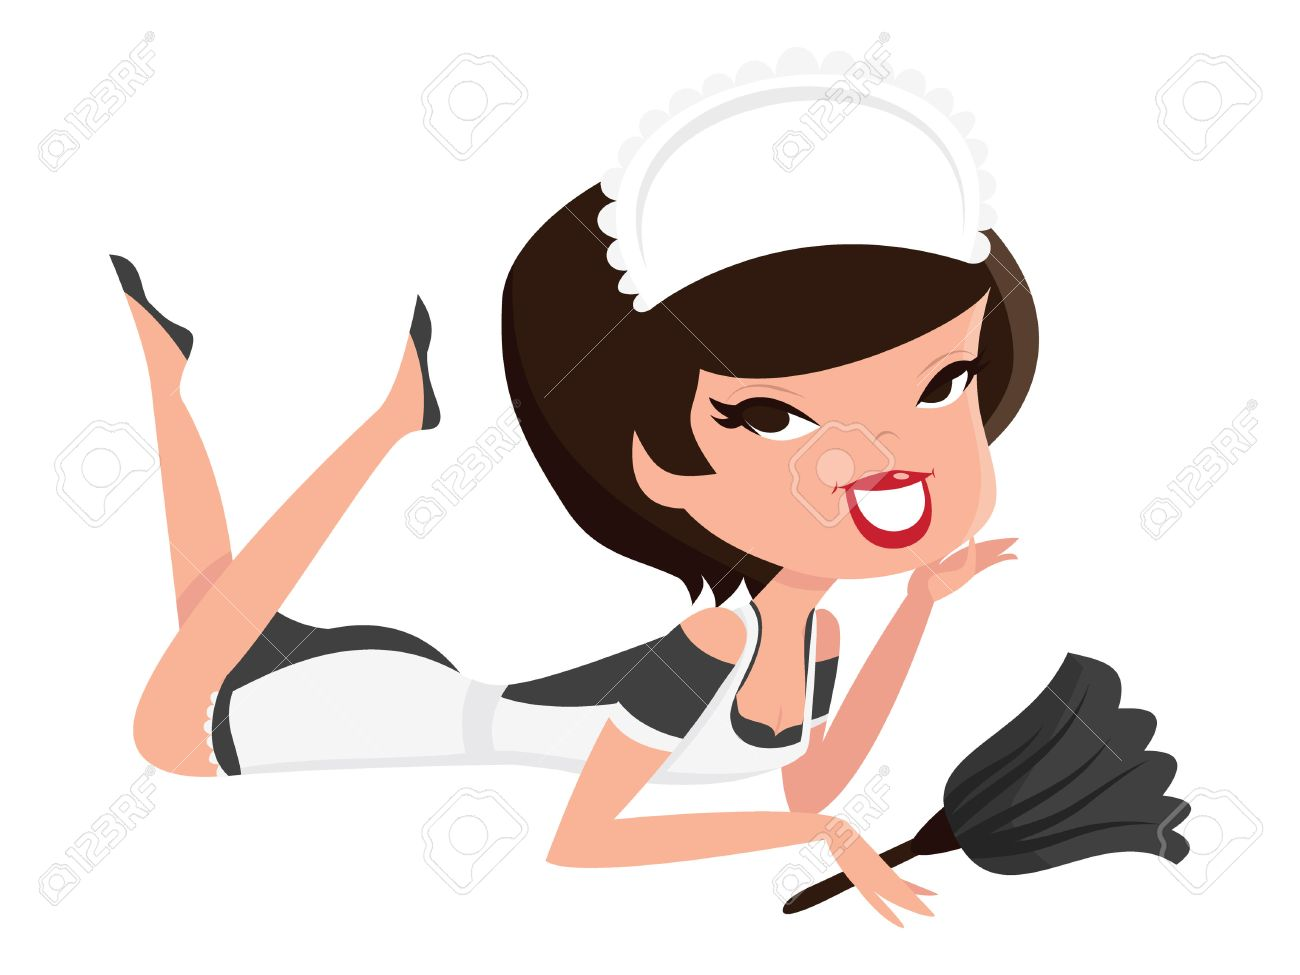 a cartoon illustration of a retro pin up french maid girl lying rh 123rf com french maid silhouette clip art Books With Glasses Clip Art